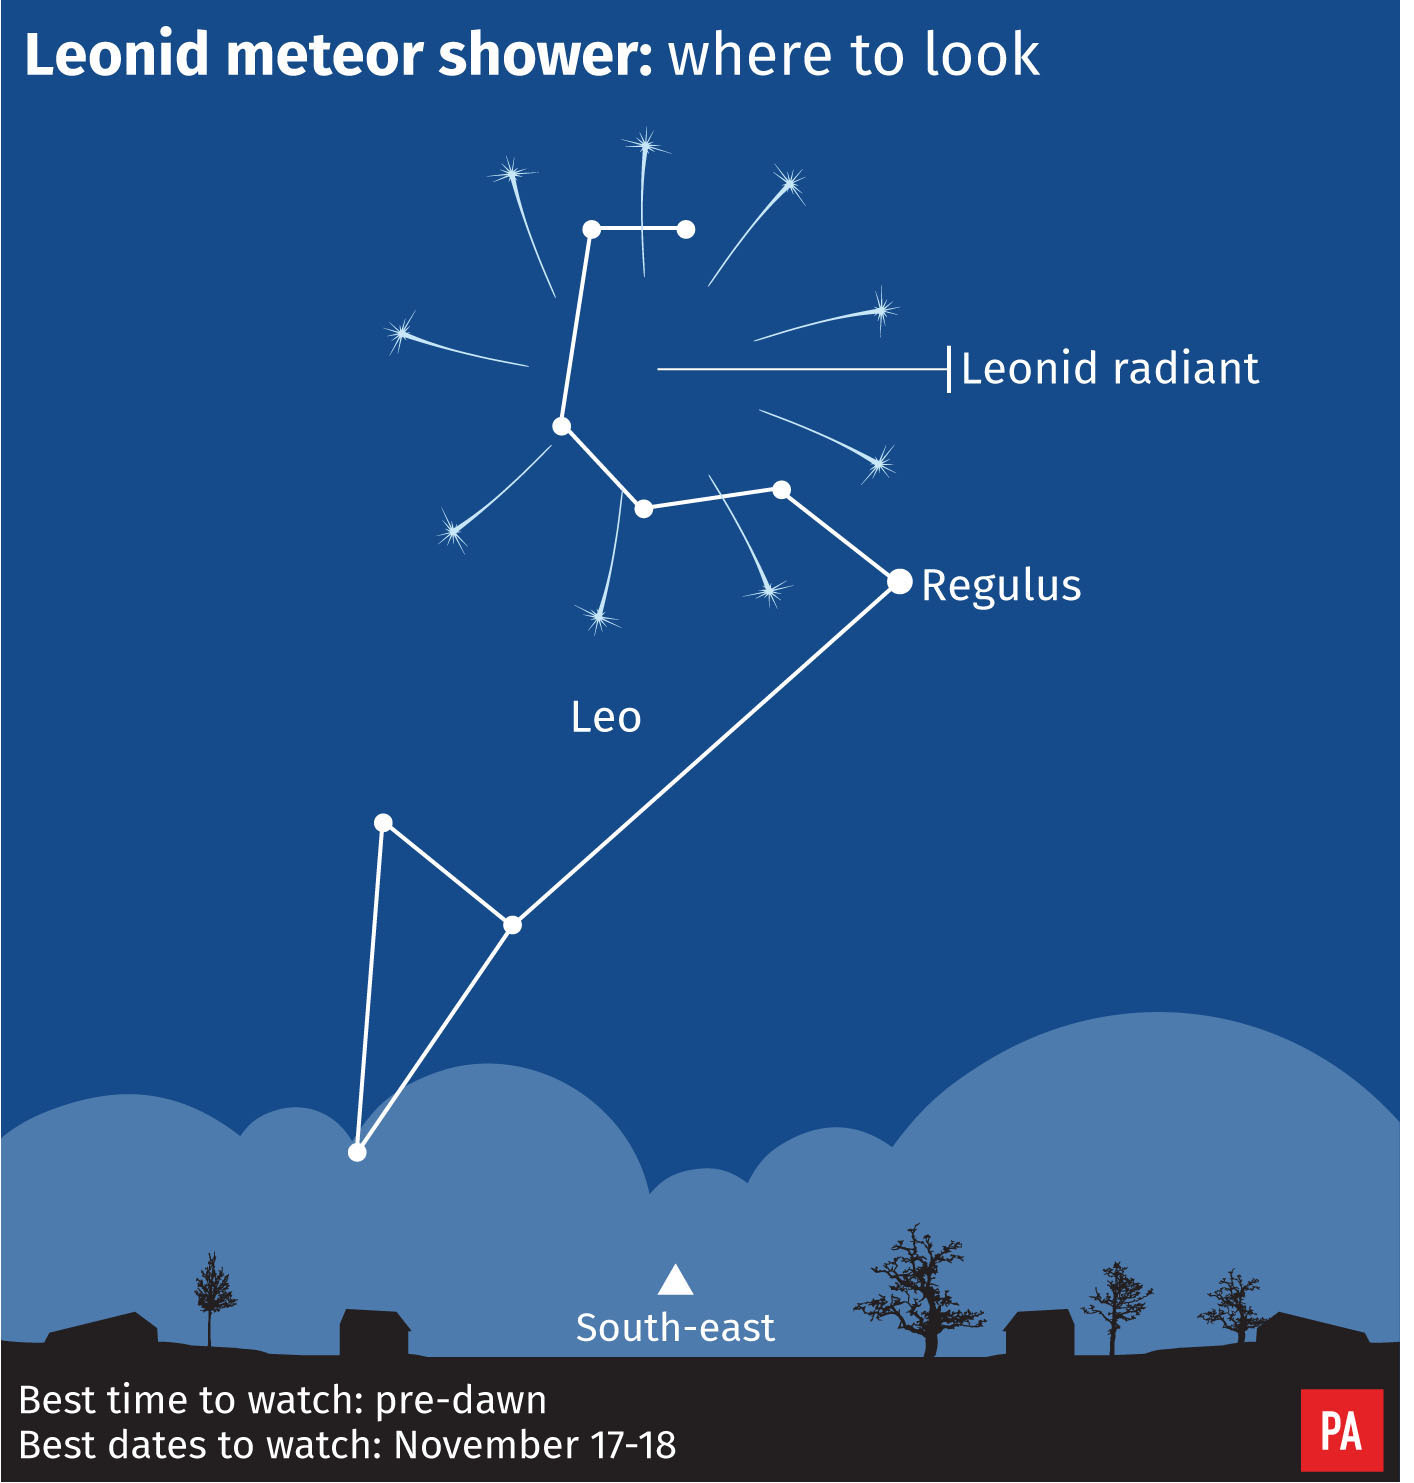 Leonid Meteor shower- Shooting stars, clear skies and a fine United Kingdom weekend